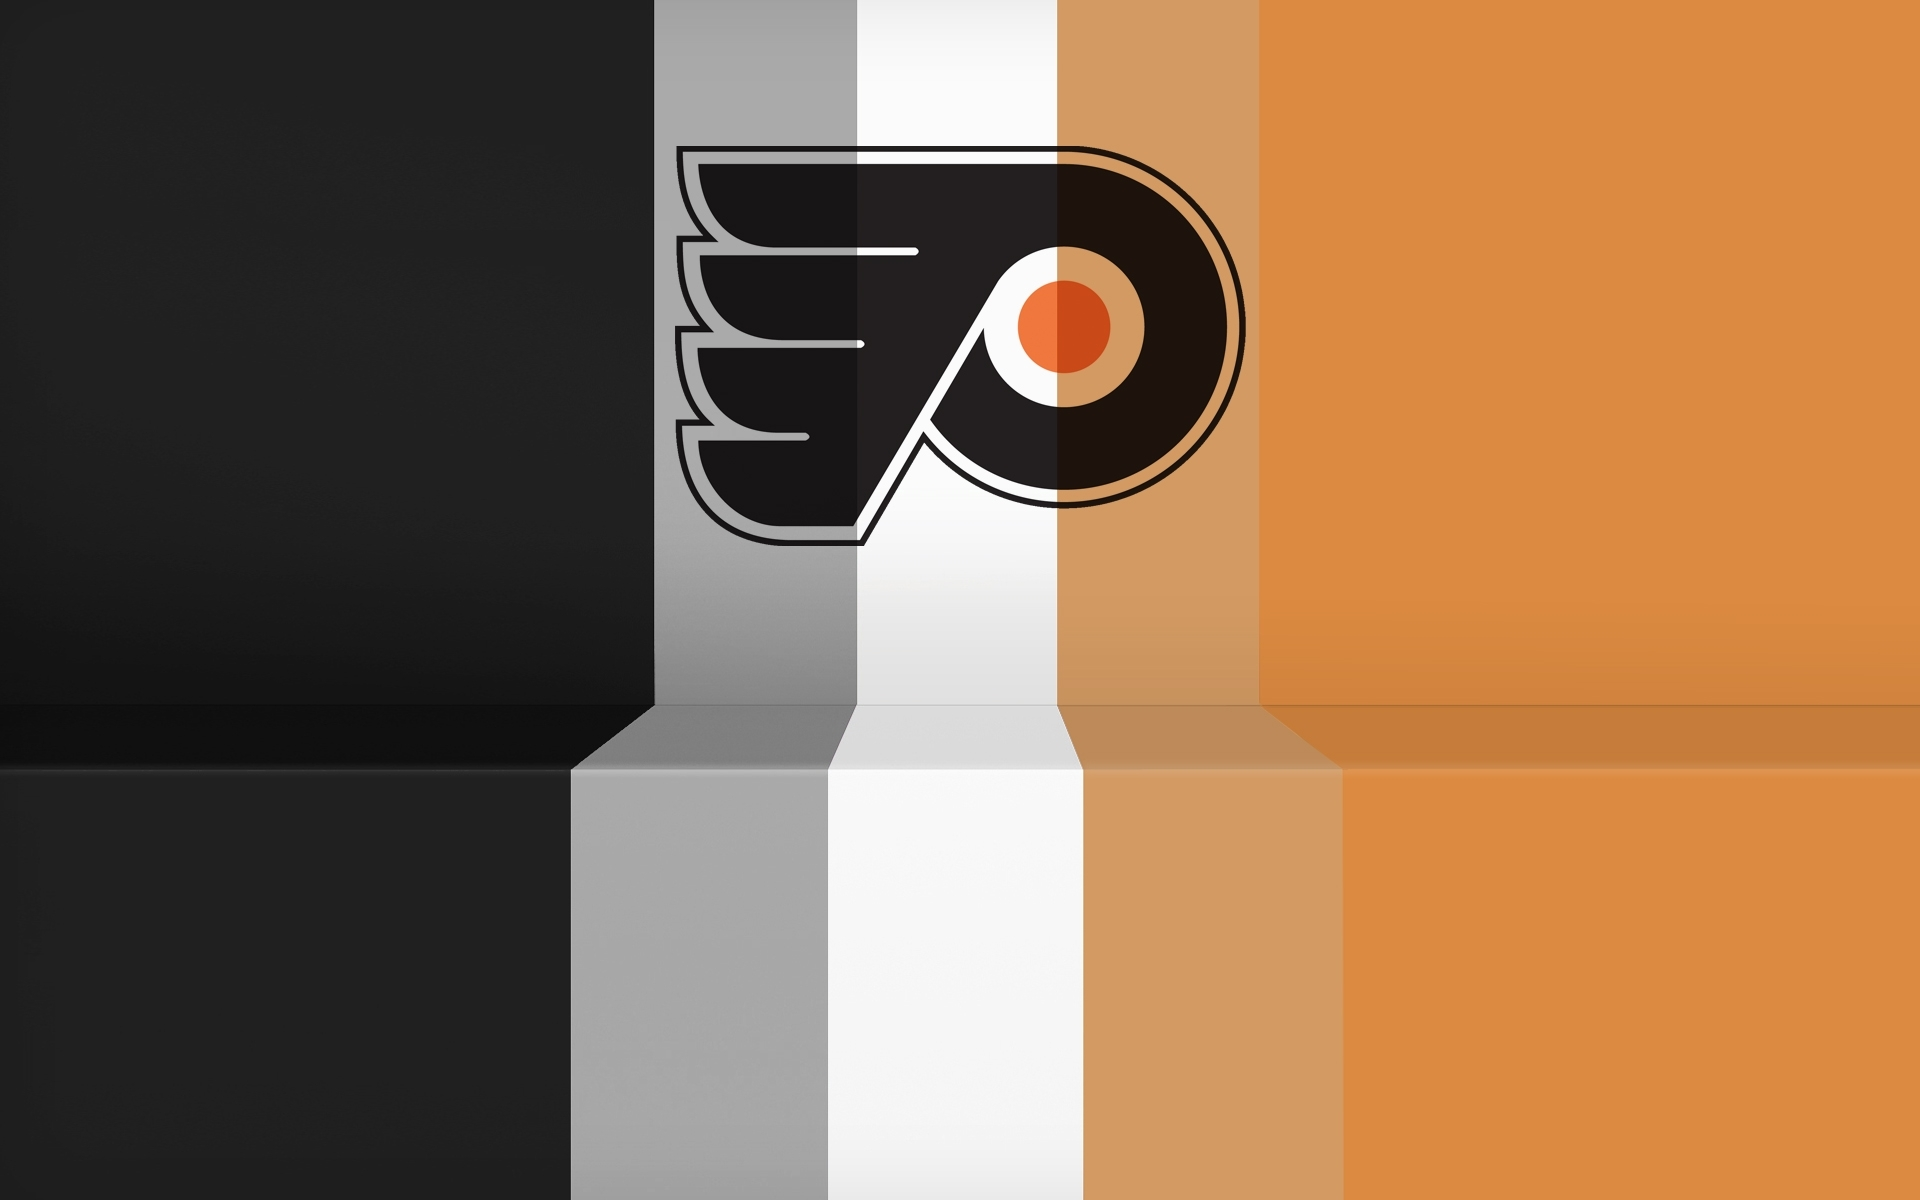 Hockey nhl philadelphia flyers wallpaper 1920x1200 1920x1200